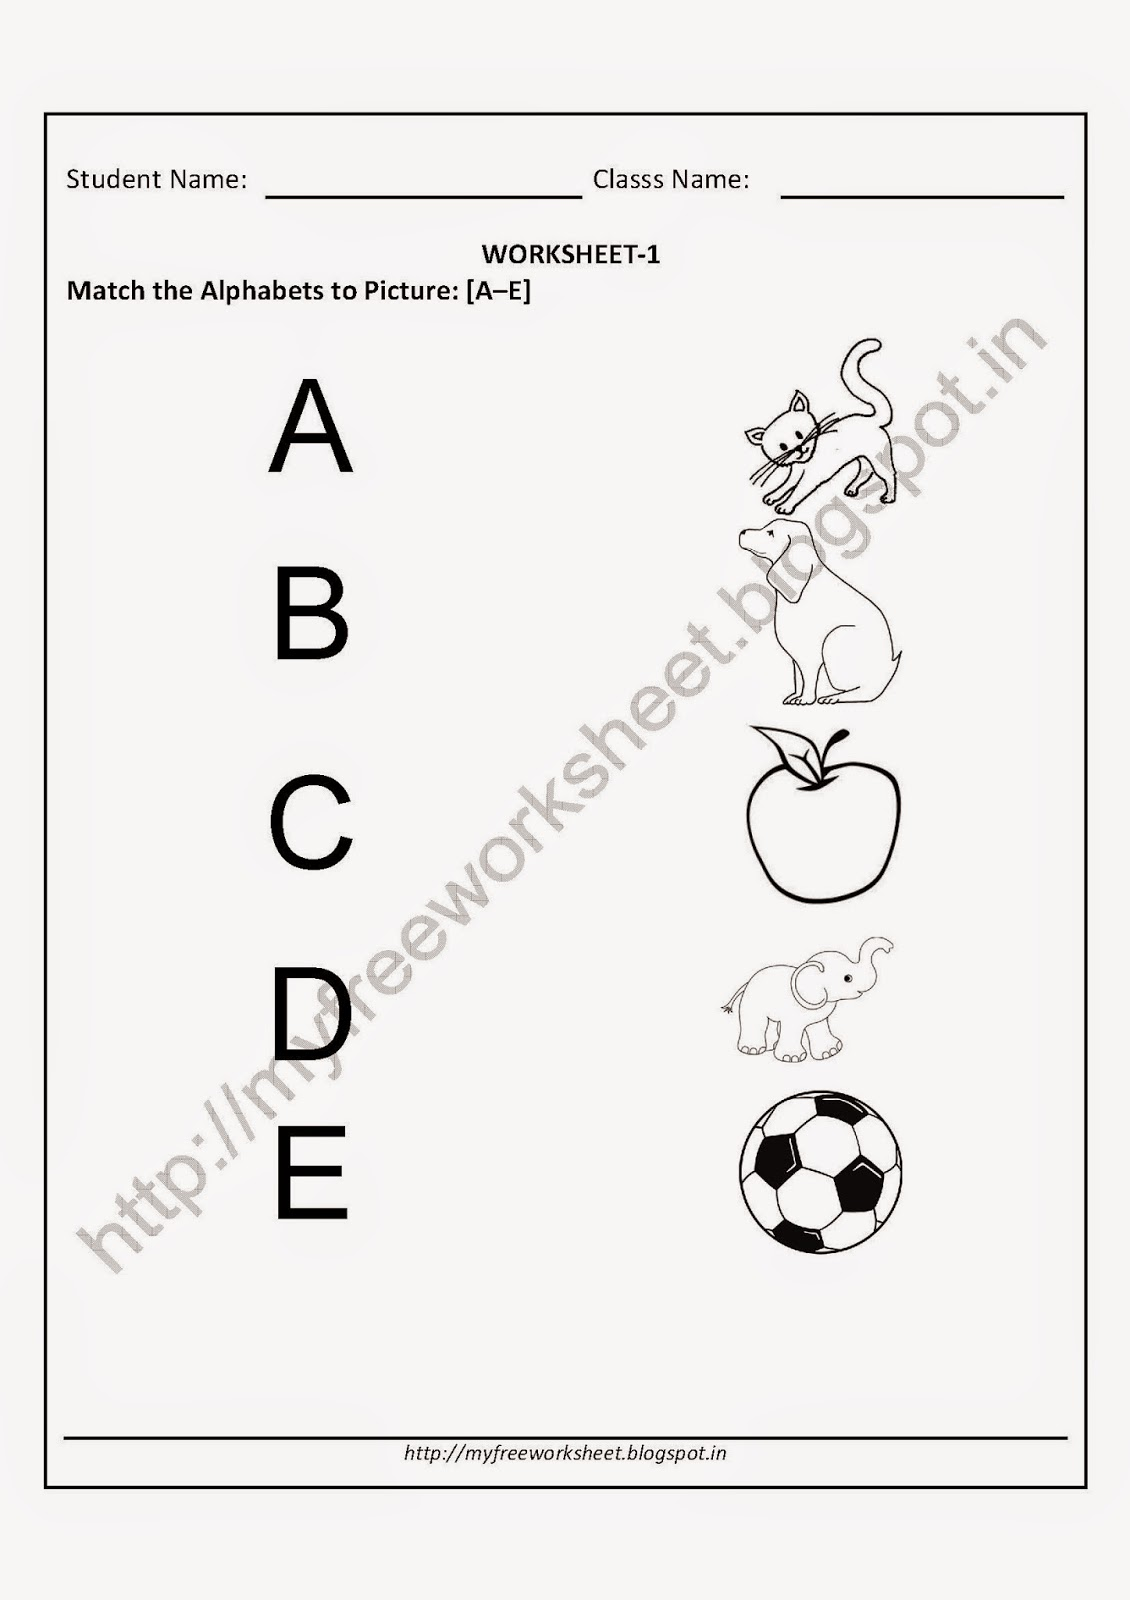 ... preschool worksheet hasadditional practice for the kindergarten child